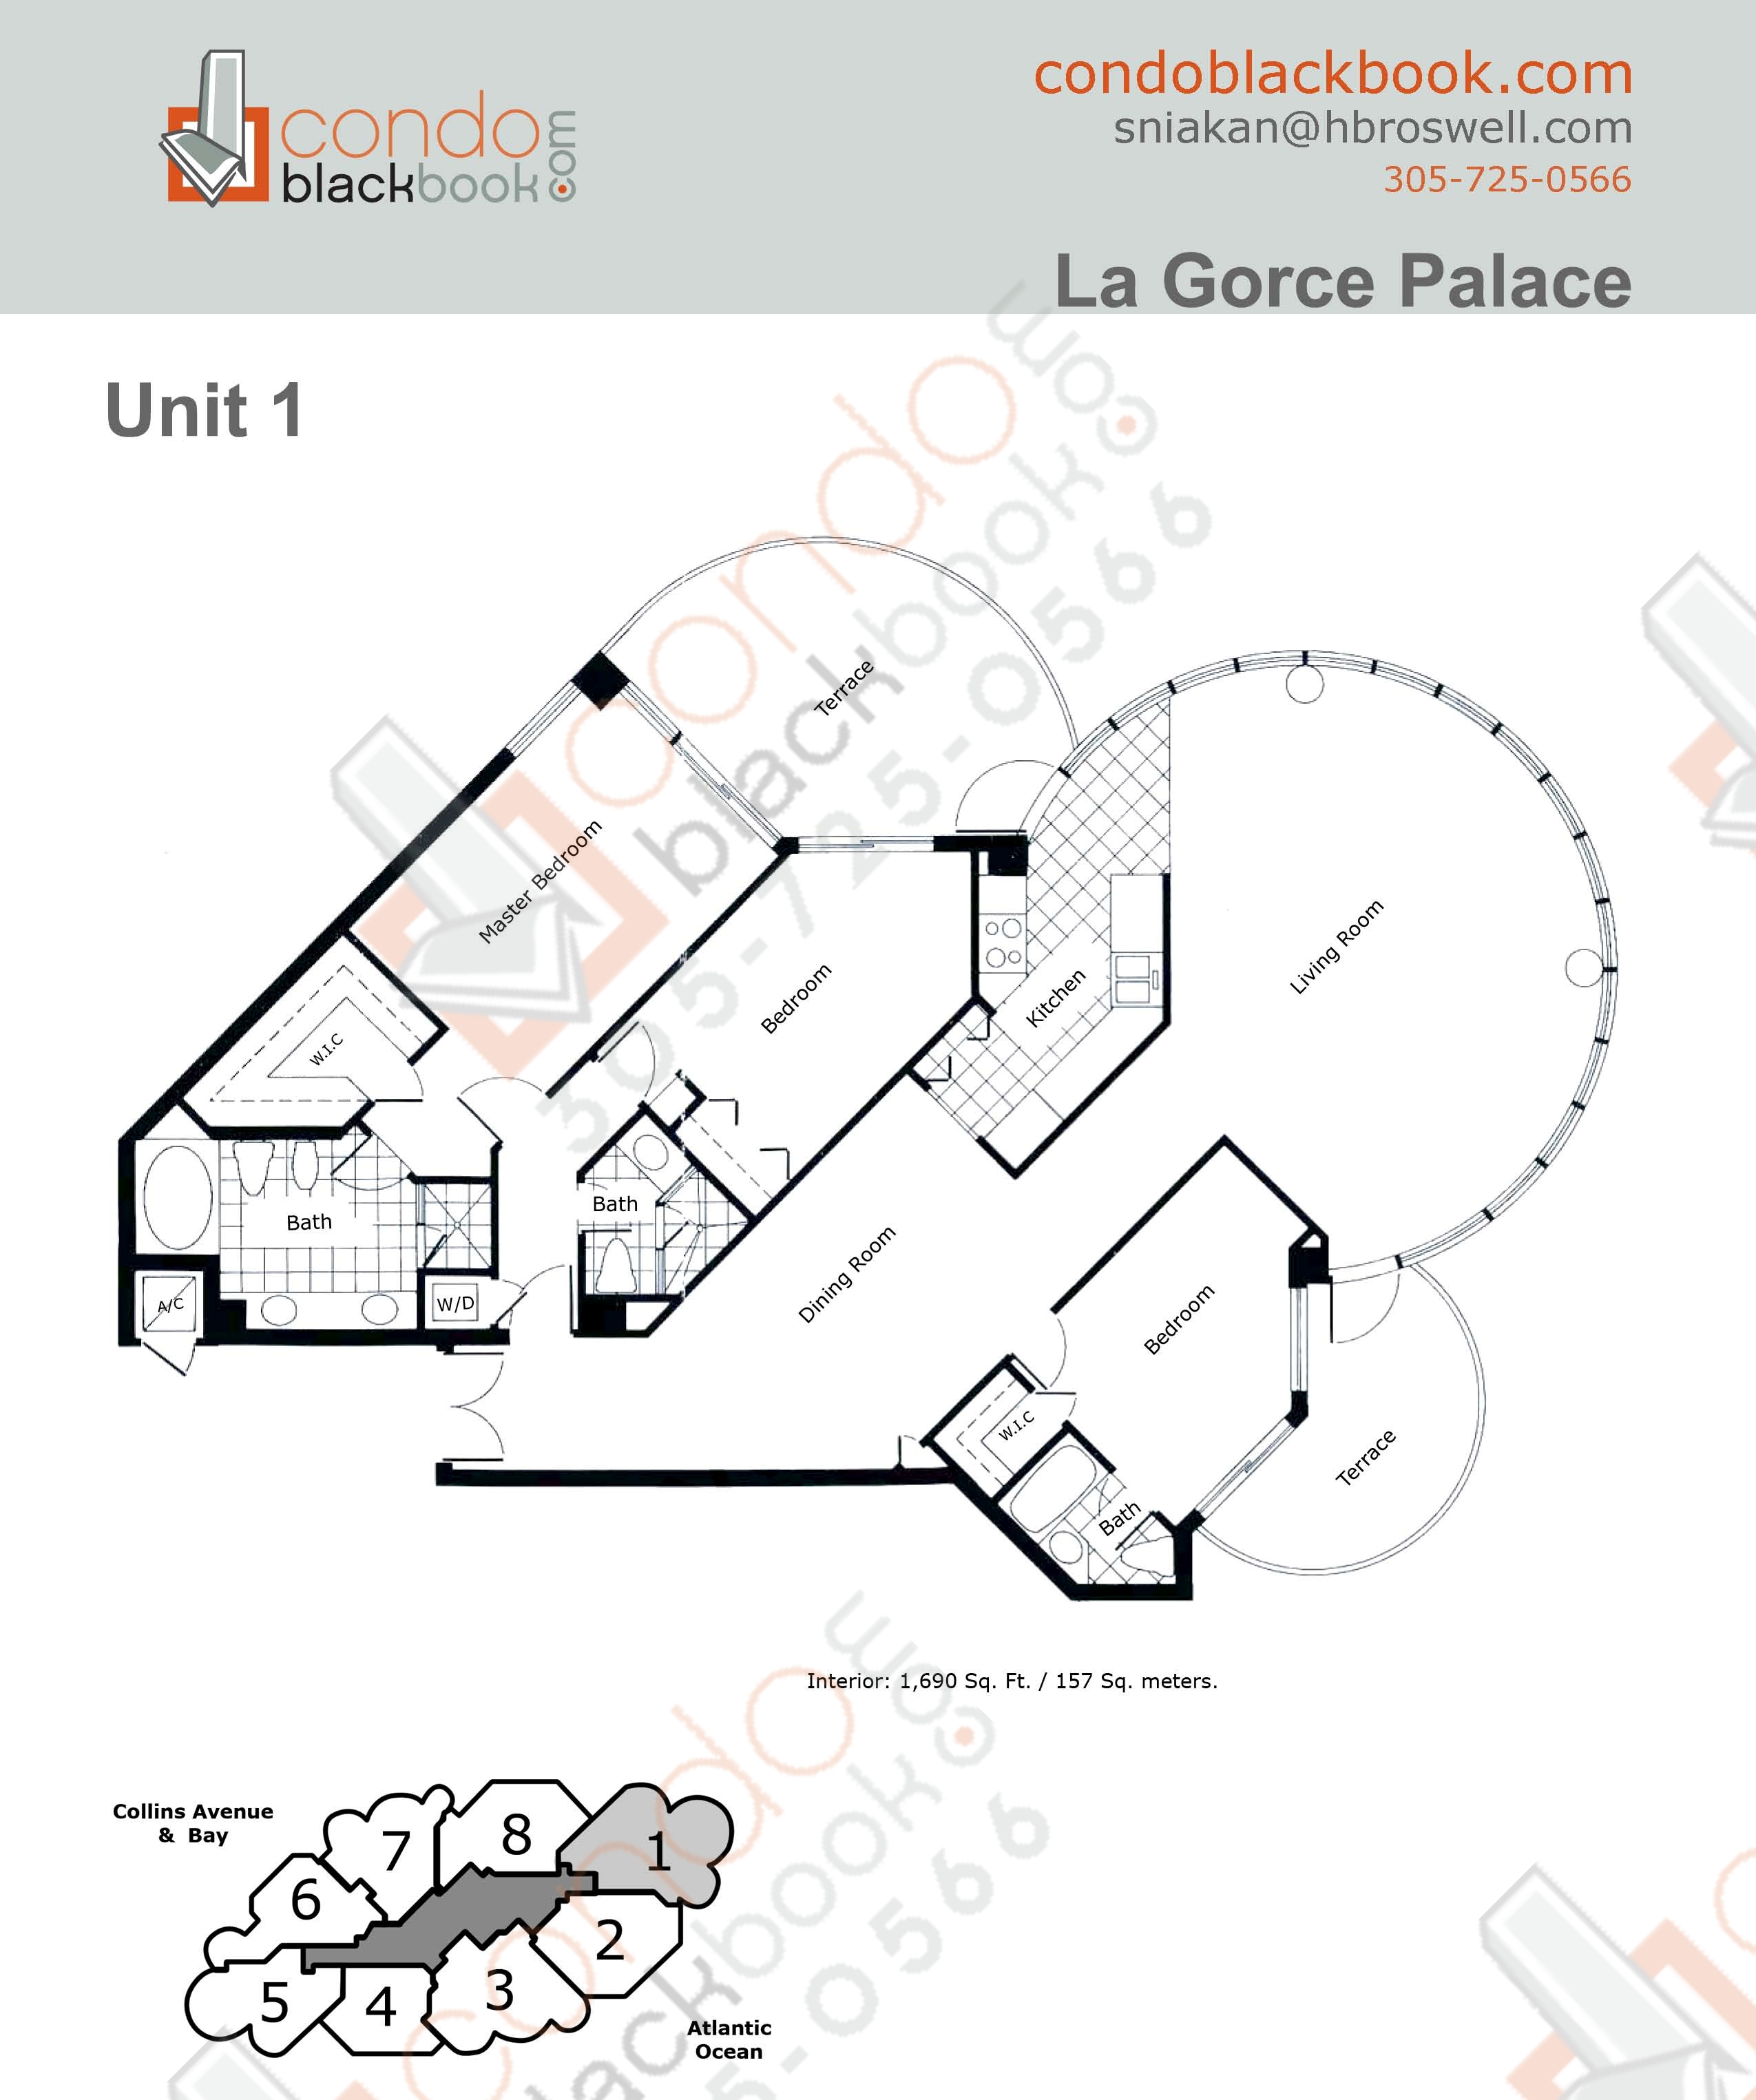 Floor plan for La Gorce North Beach Miami Beach, model 01, line 01, 3/3 bedrooms, 1690 sq ft